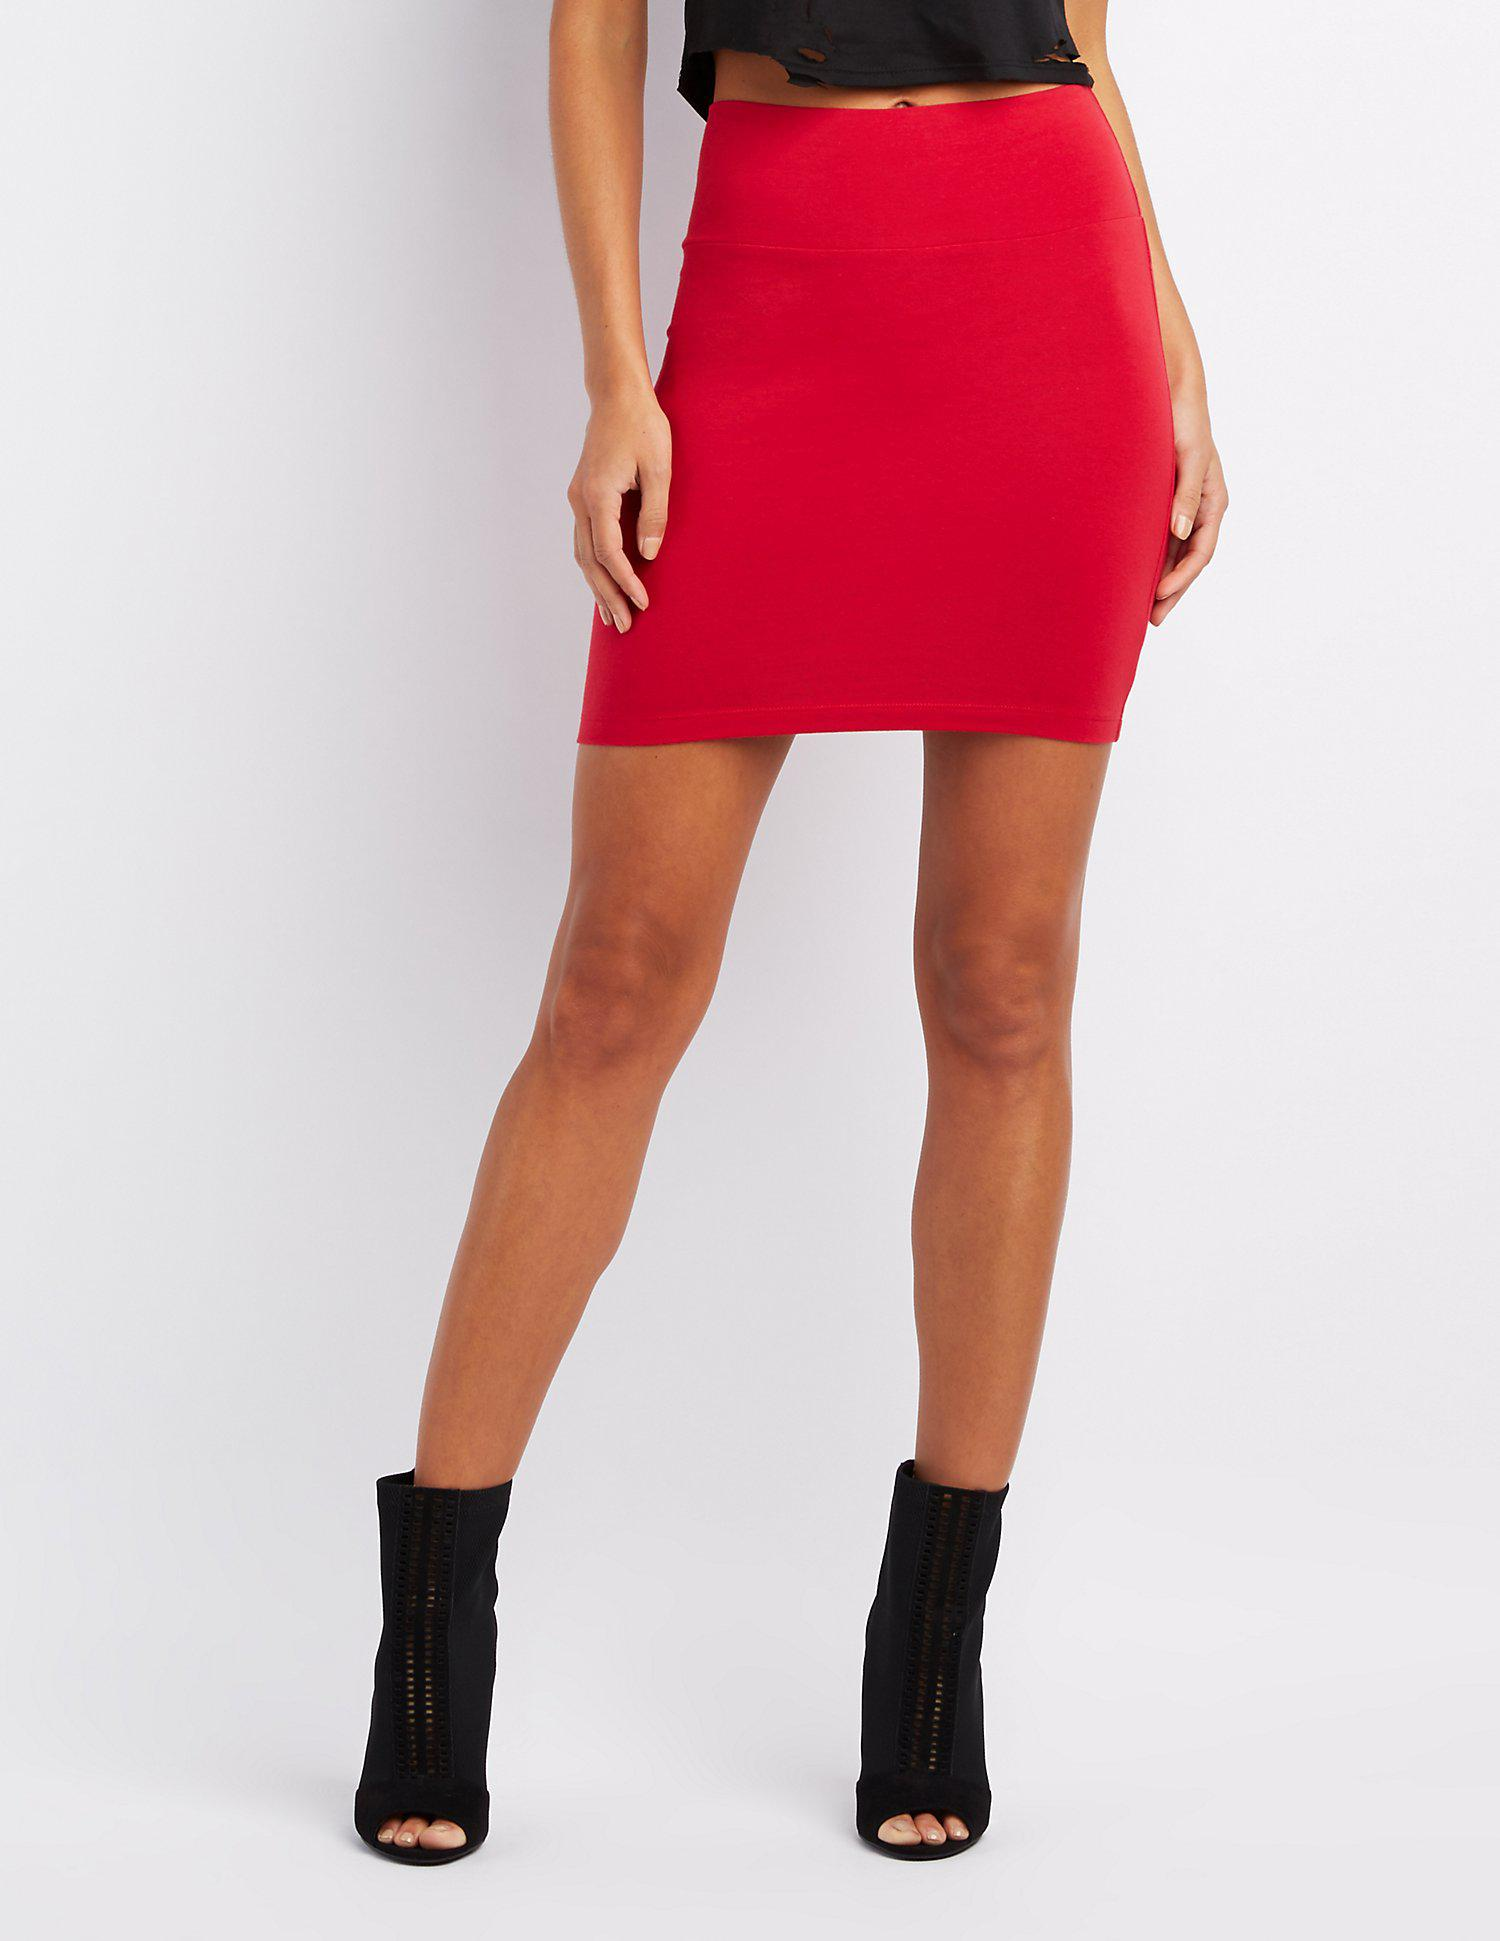 e00865b6b1 Lyst - Charlotte Russe Bodycon Mini Skirt in Red - Save 25%